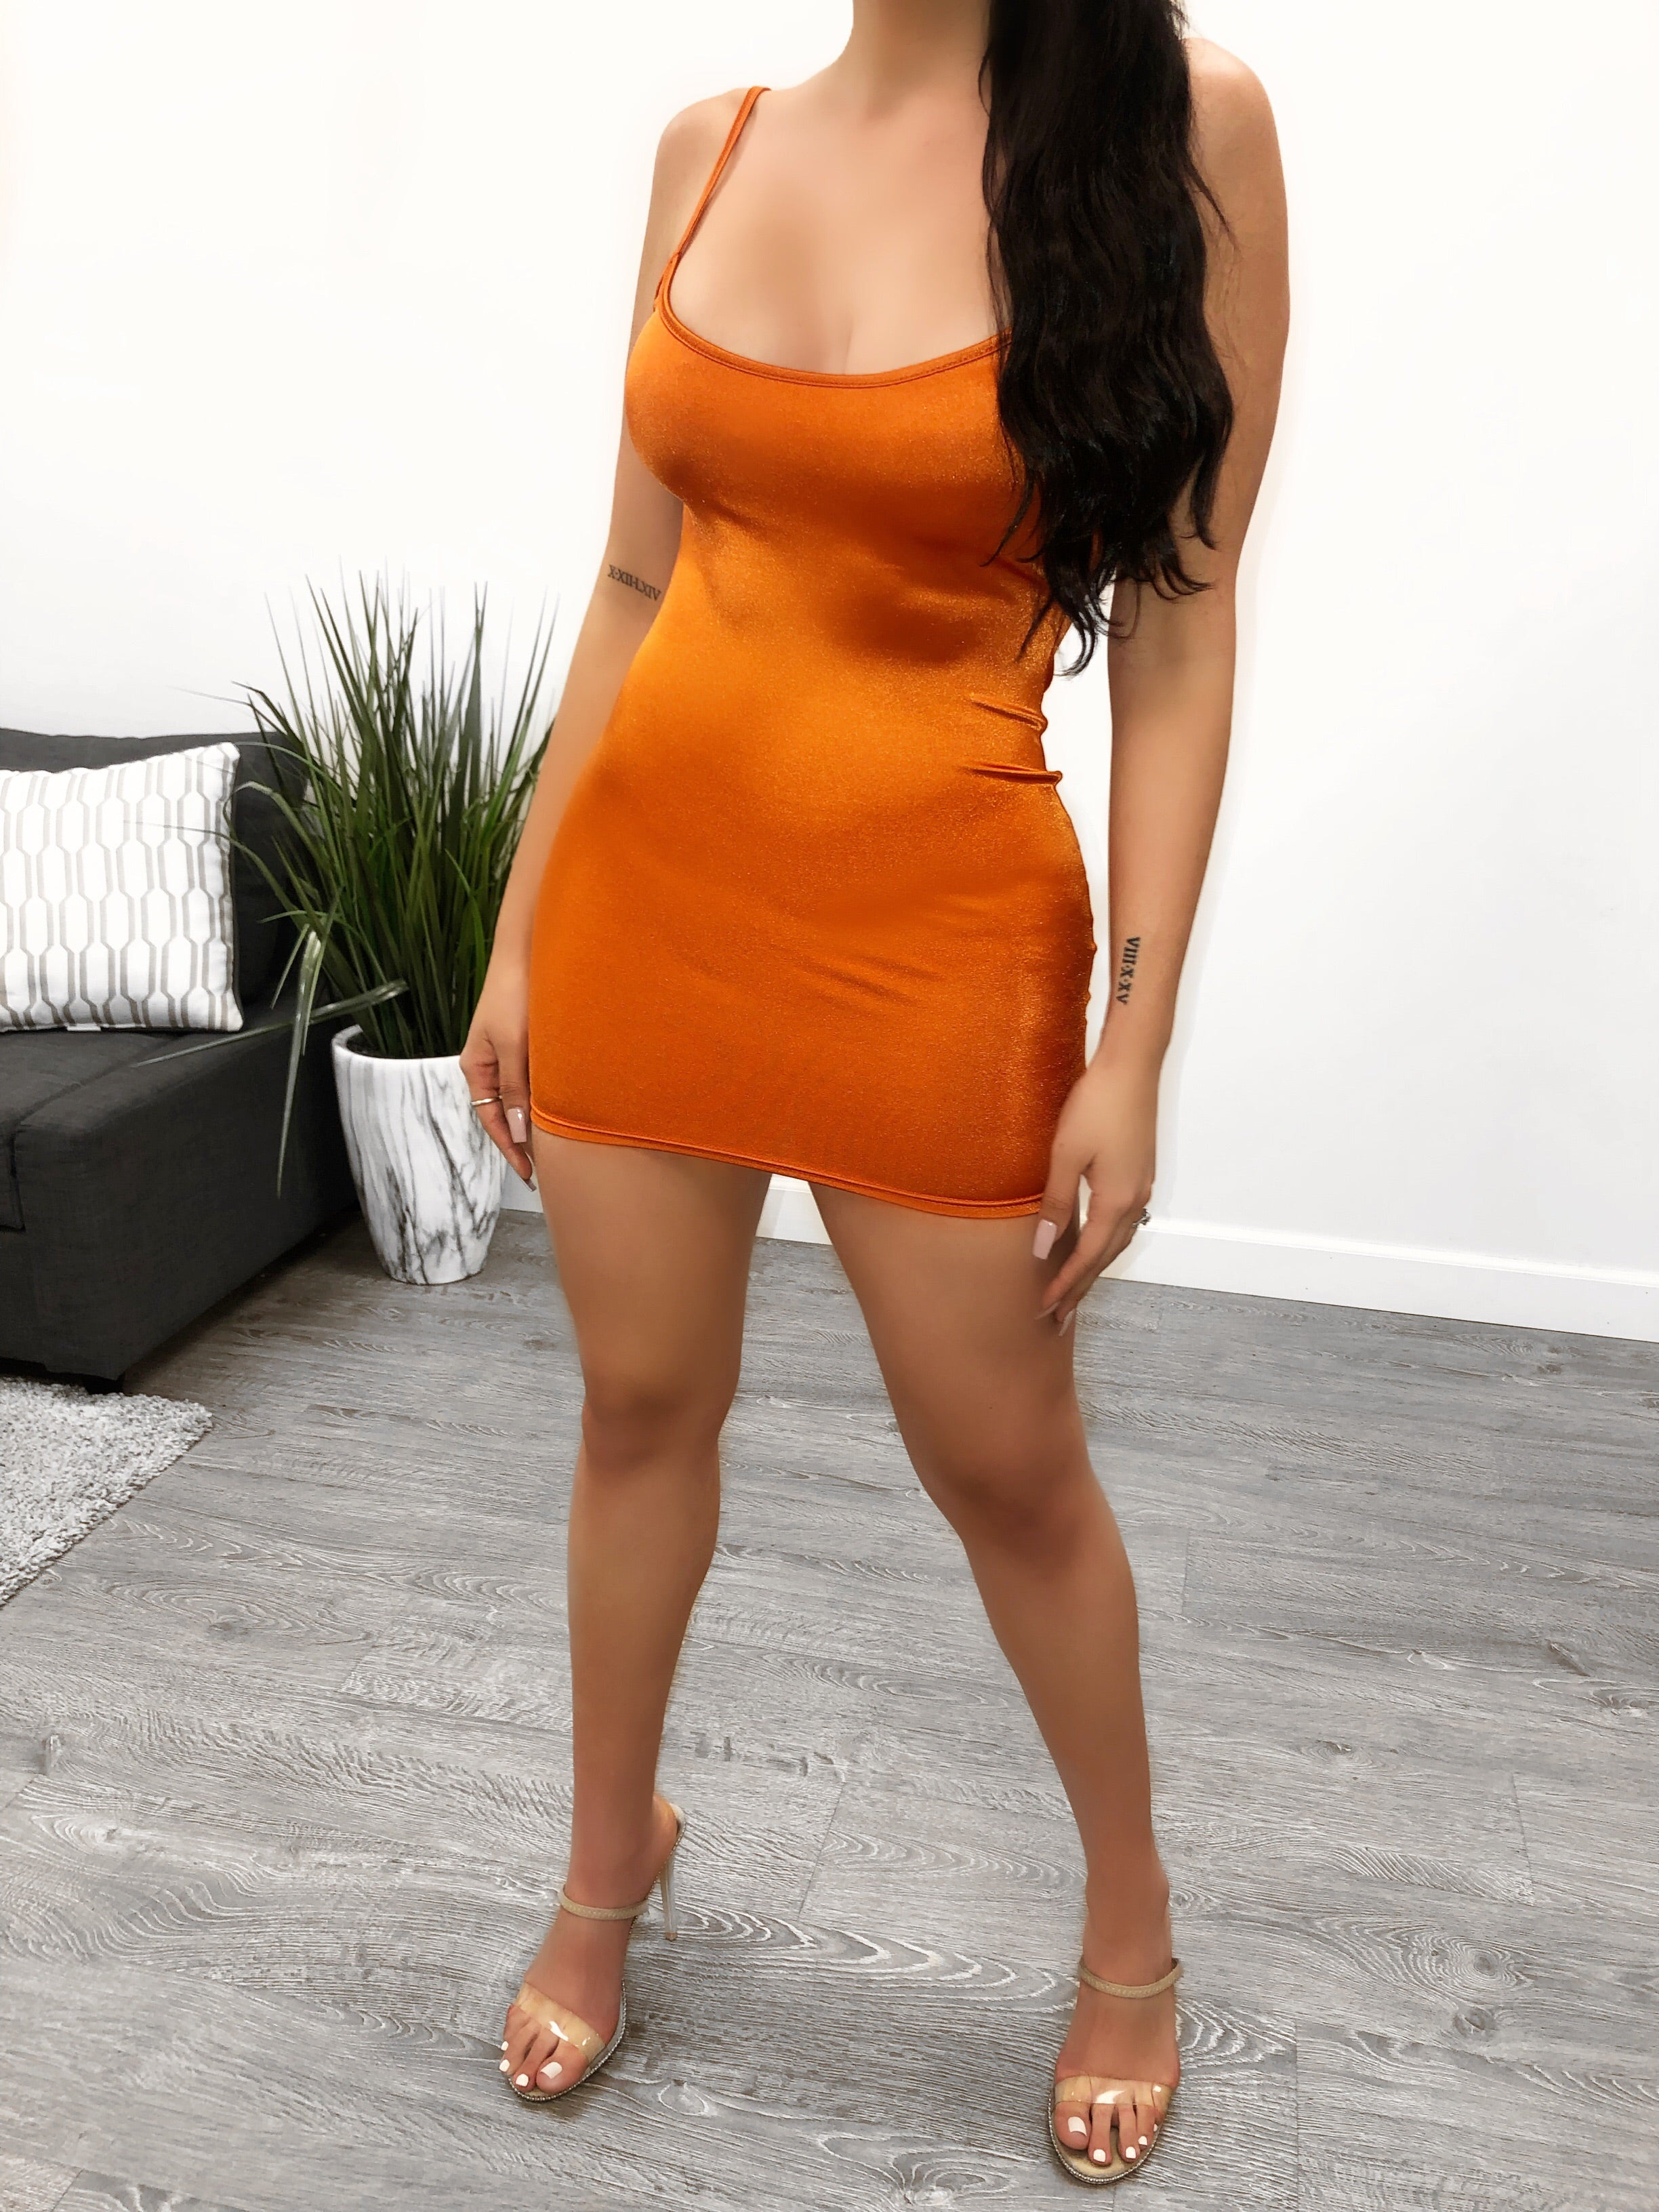 Rust satin spaghetti strapped dress, length mid thigh, mid cleavage